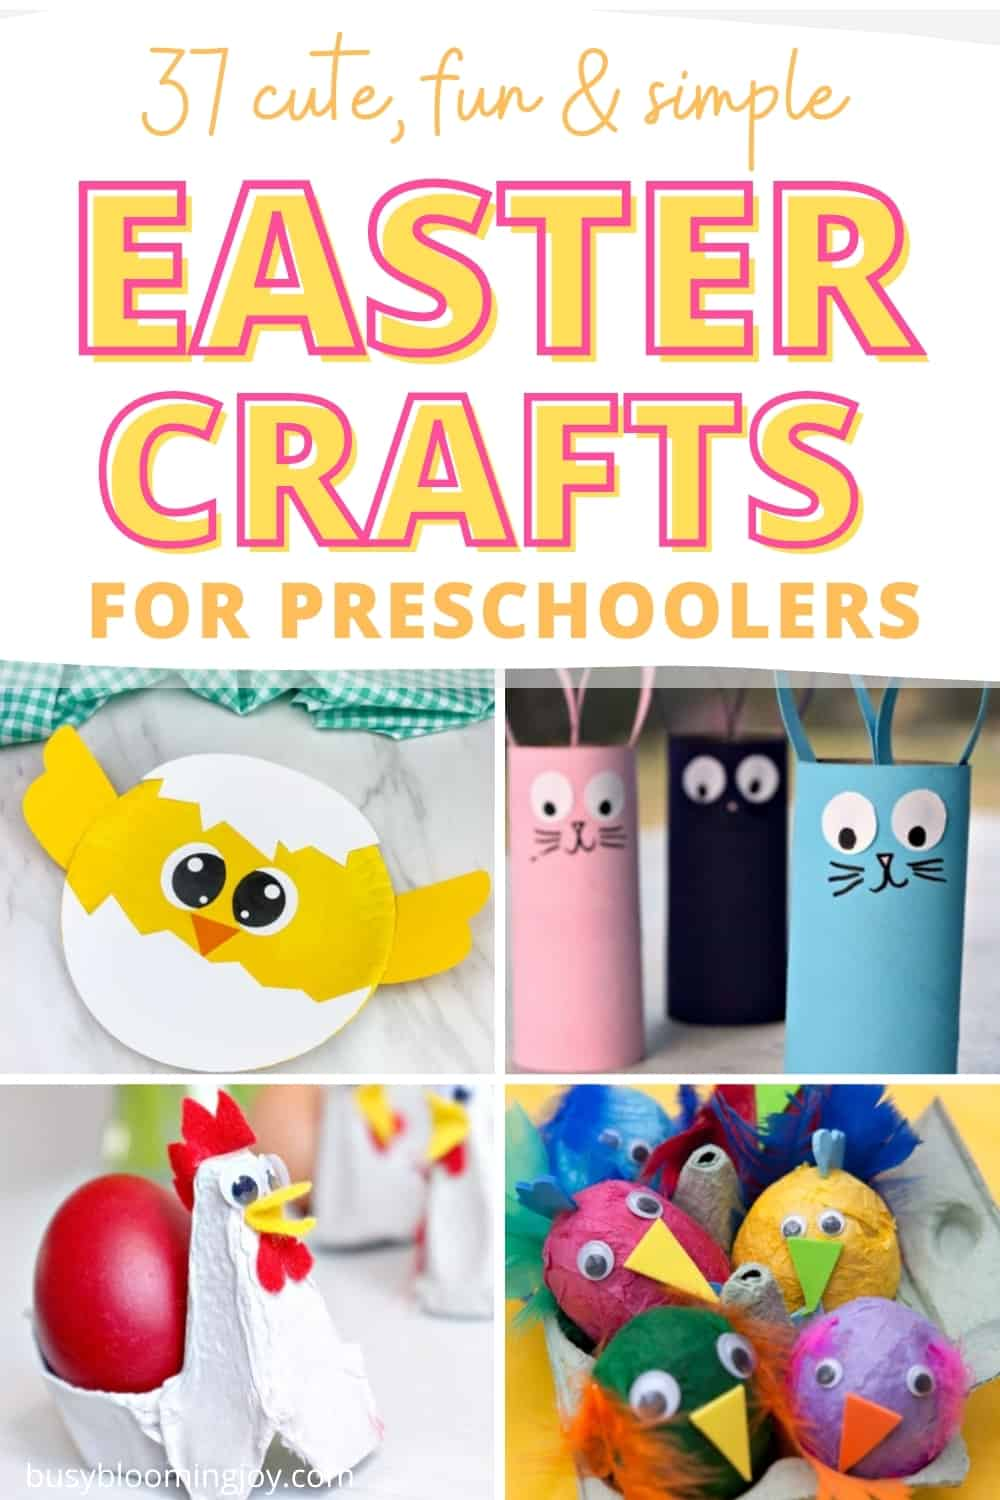 37+ Easter crafts for preschoolers: simple, adorable and lots of fun (even for mom!)